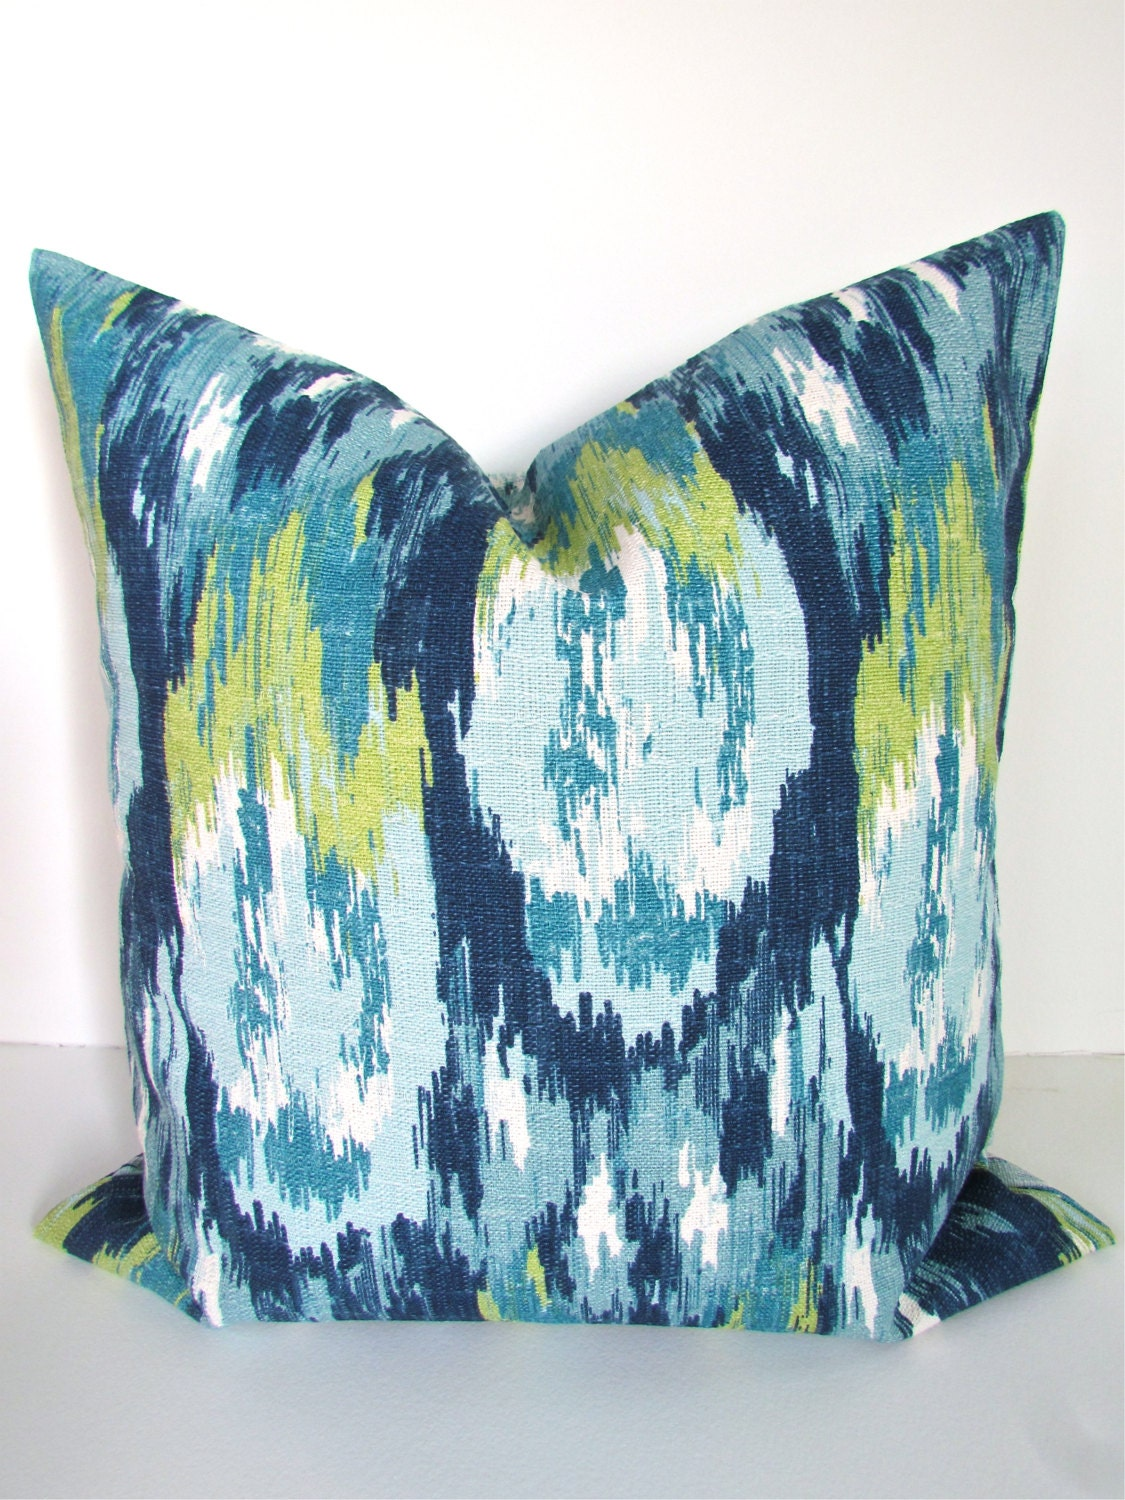 PILLOWS Blue Pillow Covers Teal Throw Pillows 16 18x18 20 Teal